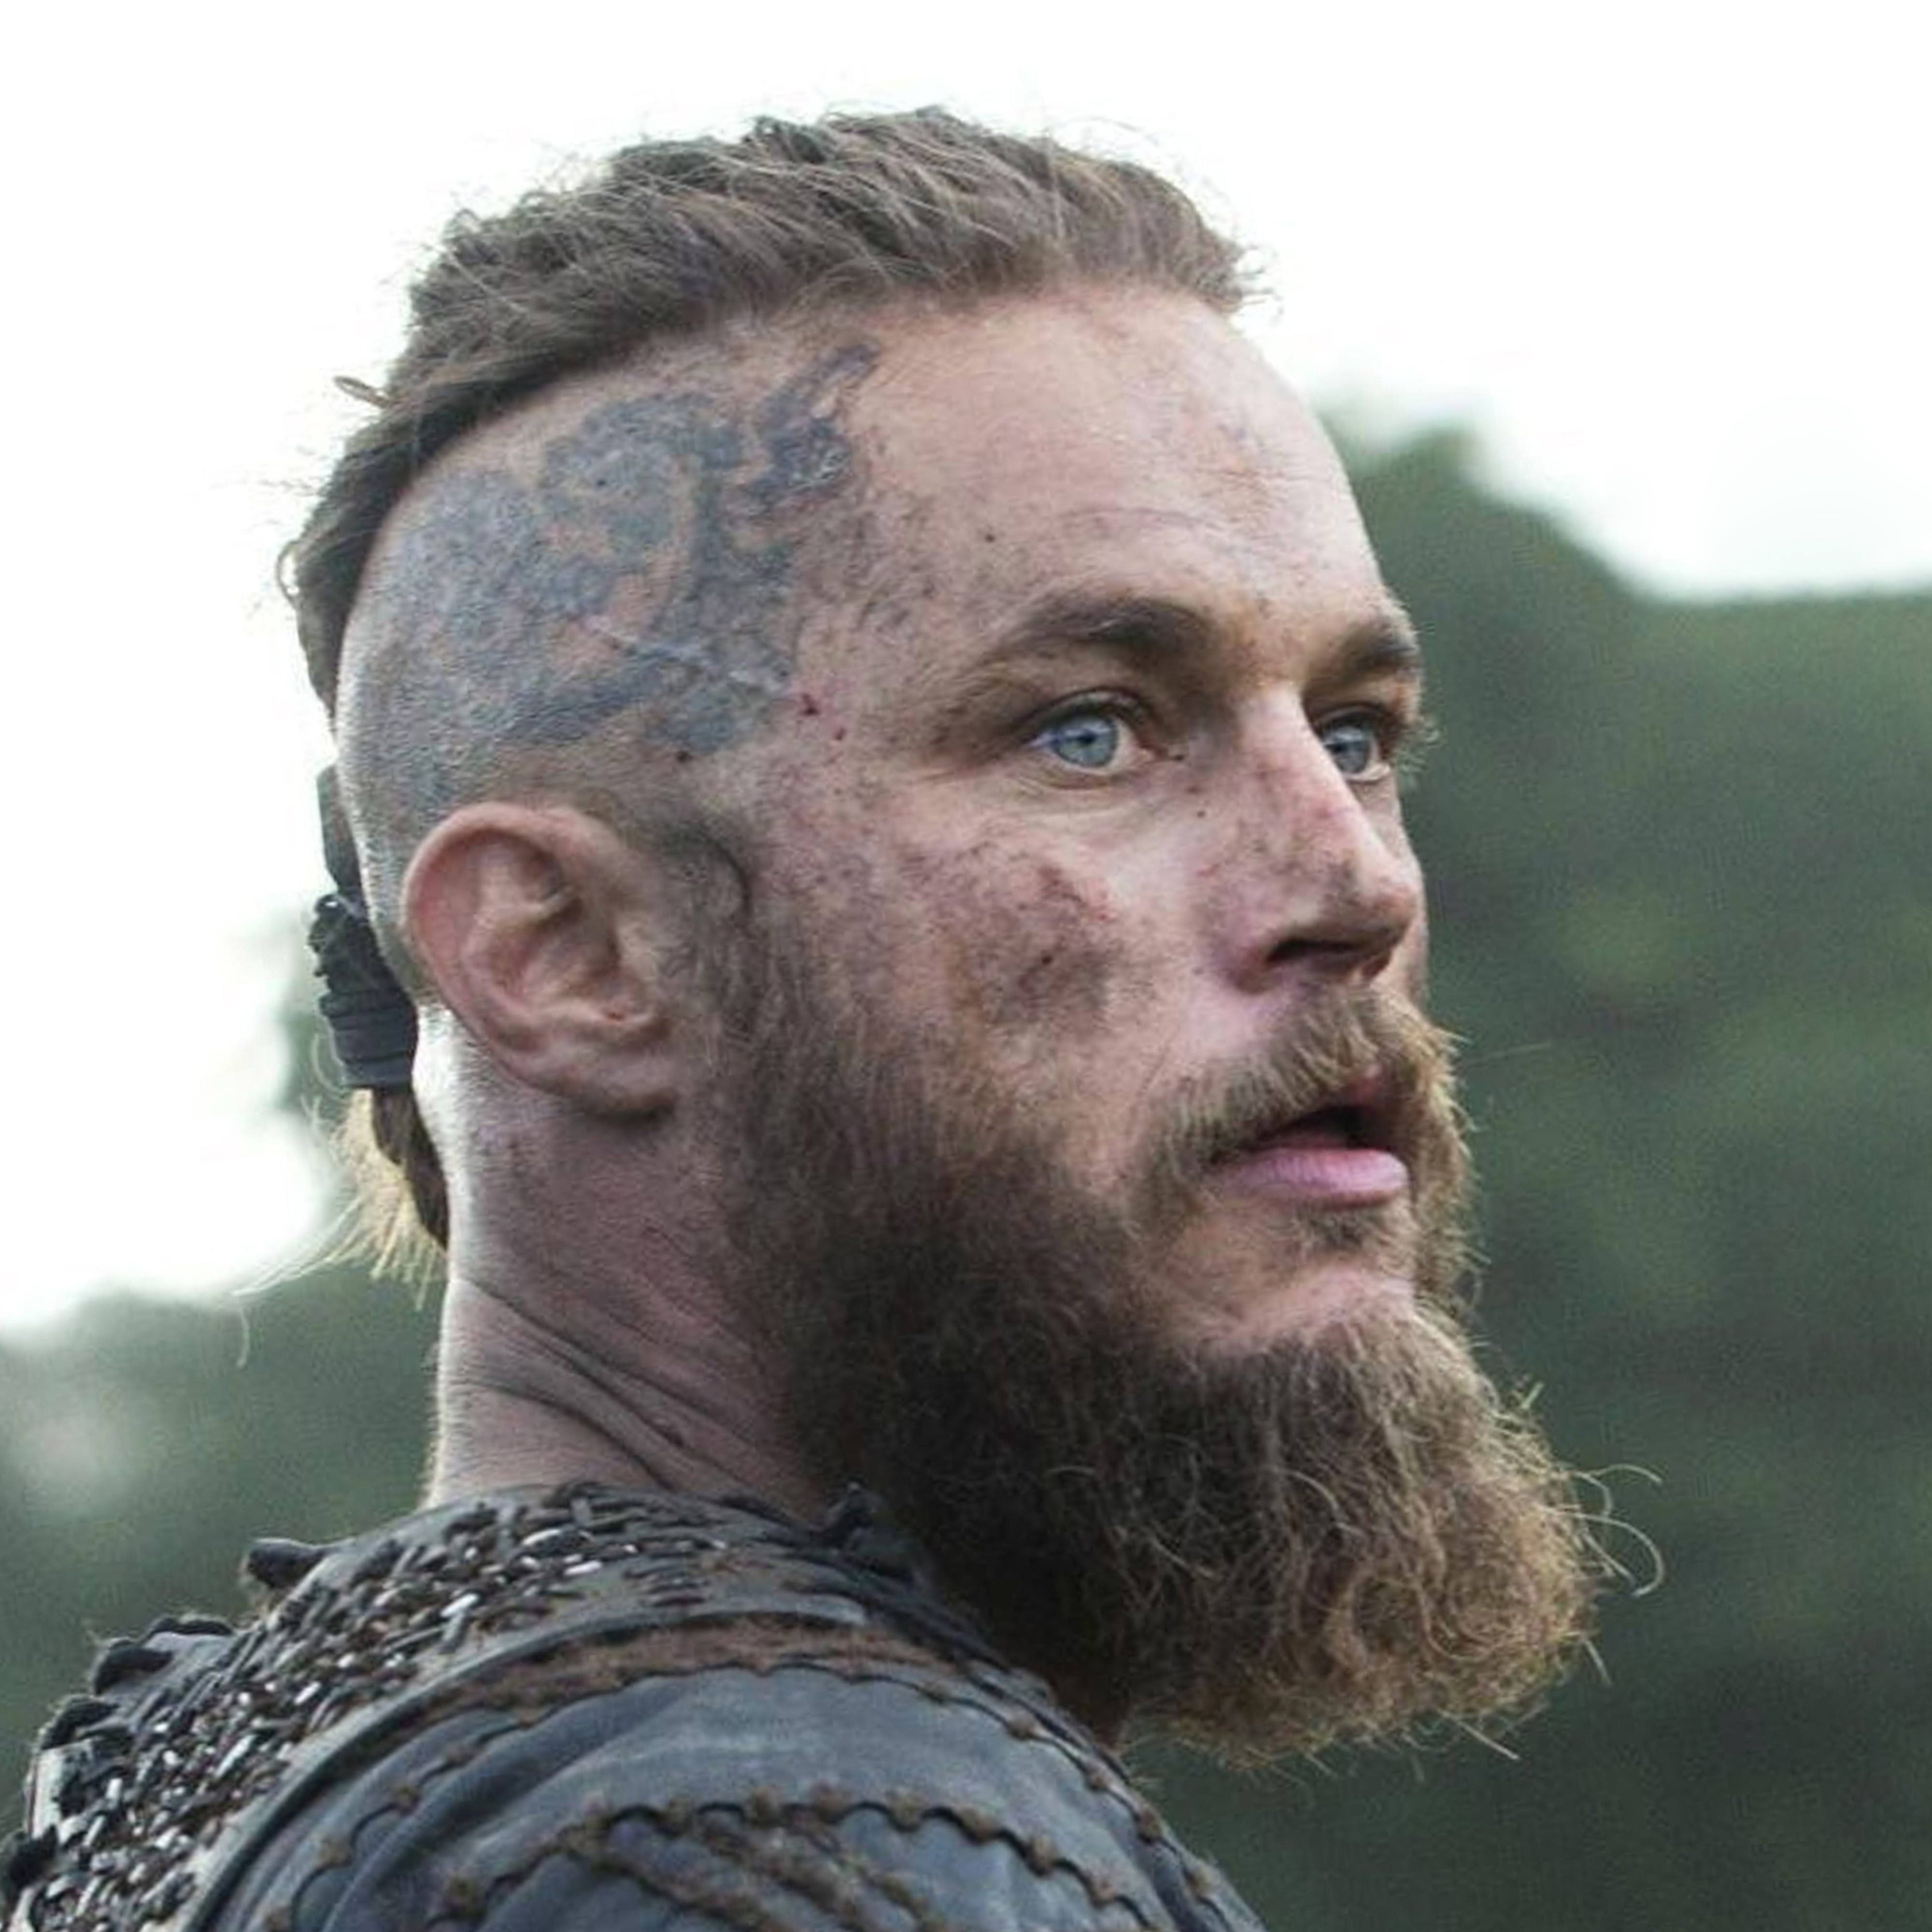 A long beard in the Viking style.